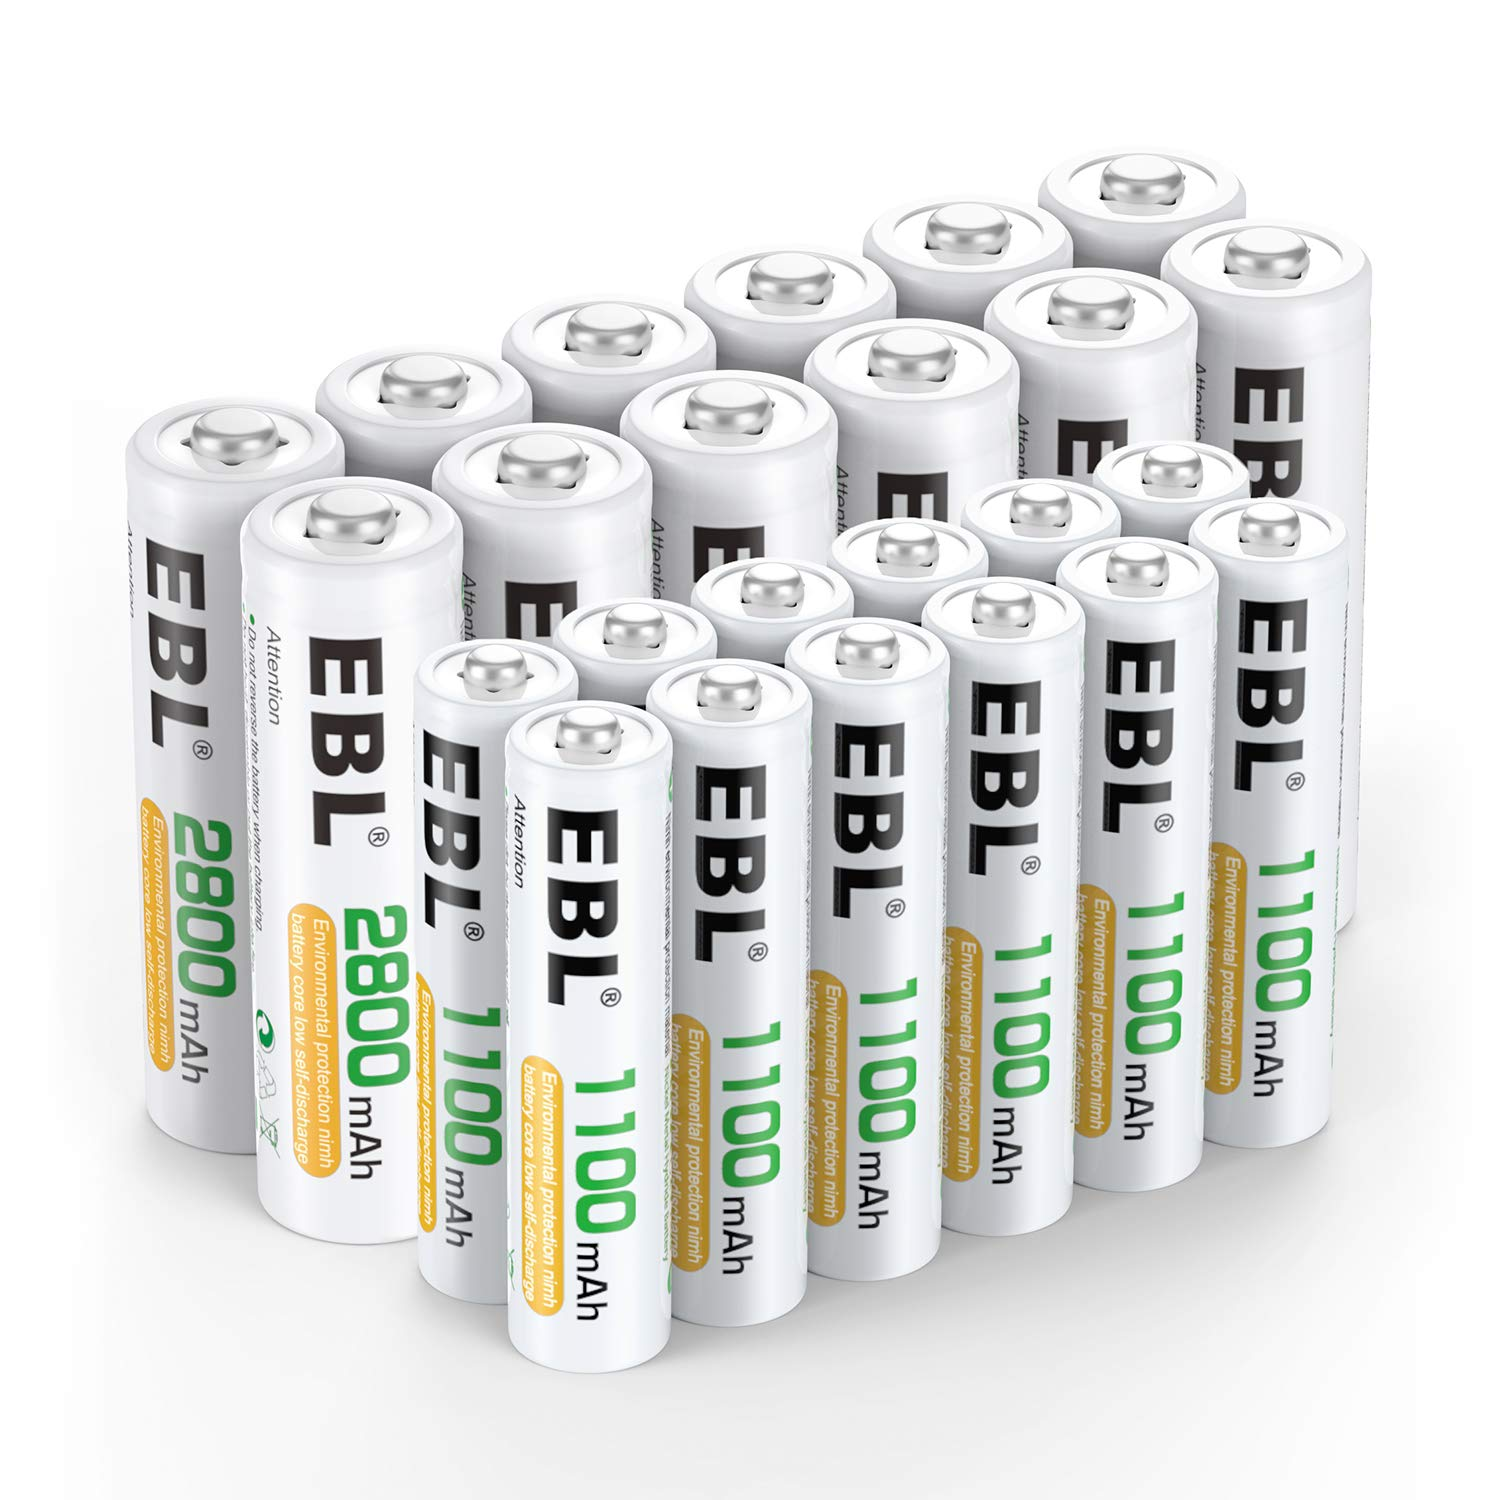 EBL 24 Sets Rechargeable Batteries (AA 2800mAh 12 Counts and AAA 1100mAh 12 Counts) by EBL